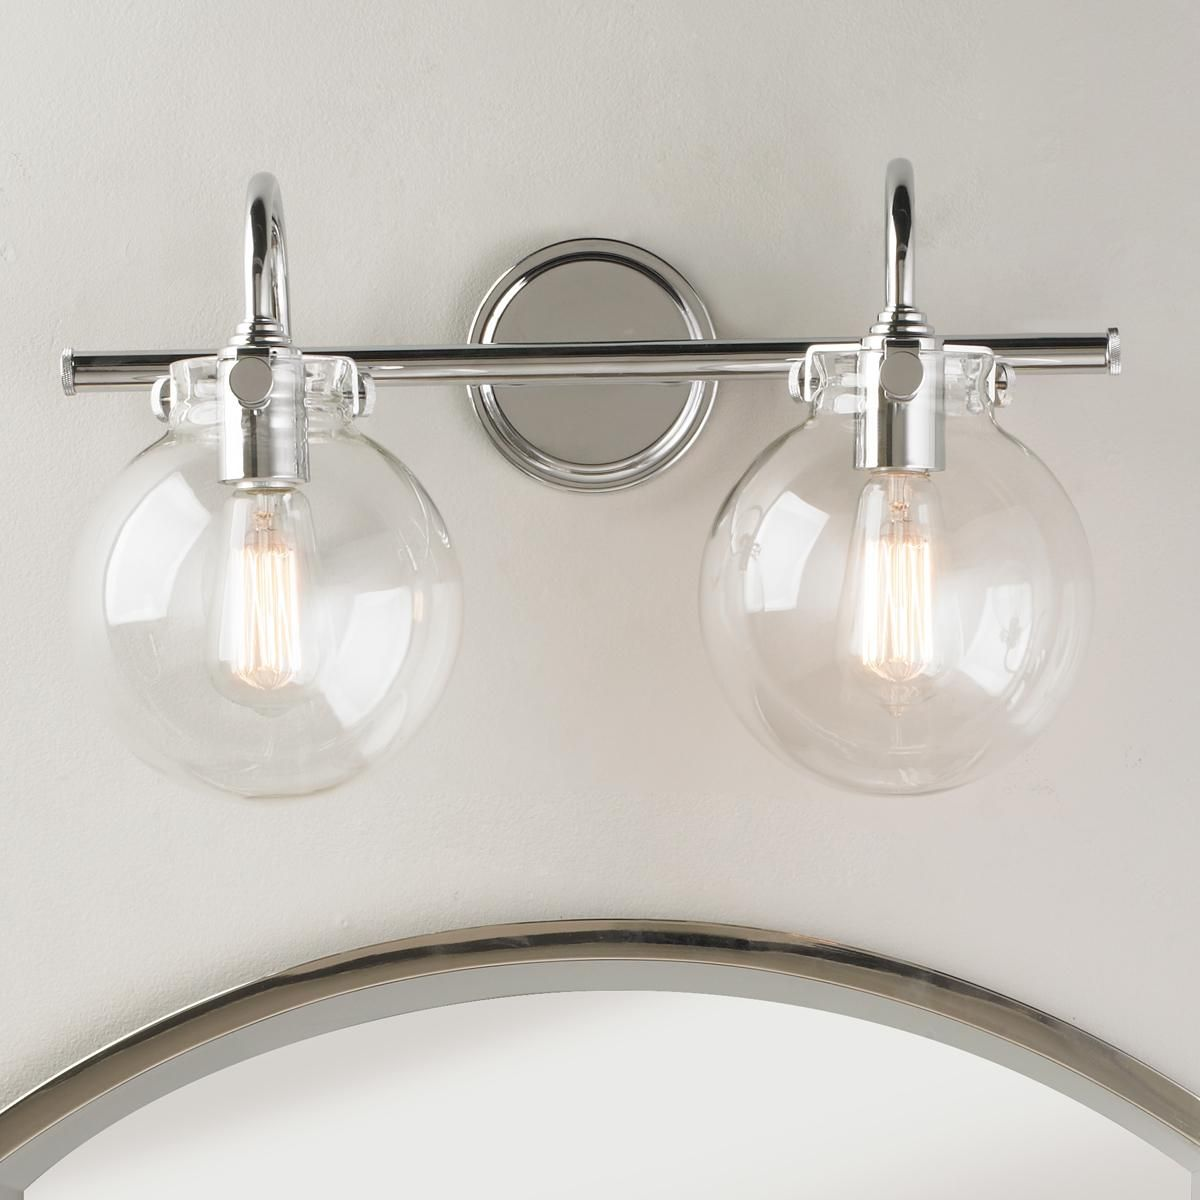 Vanity Light Fixture Globes : Retro Glass Globe Bath Light - 2 Light Bath light, Globe and Vanities